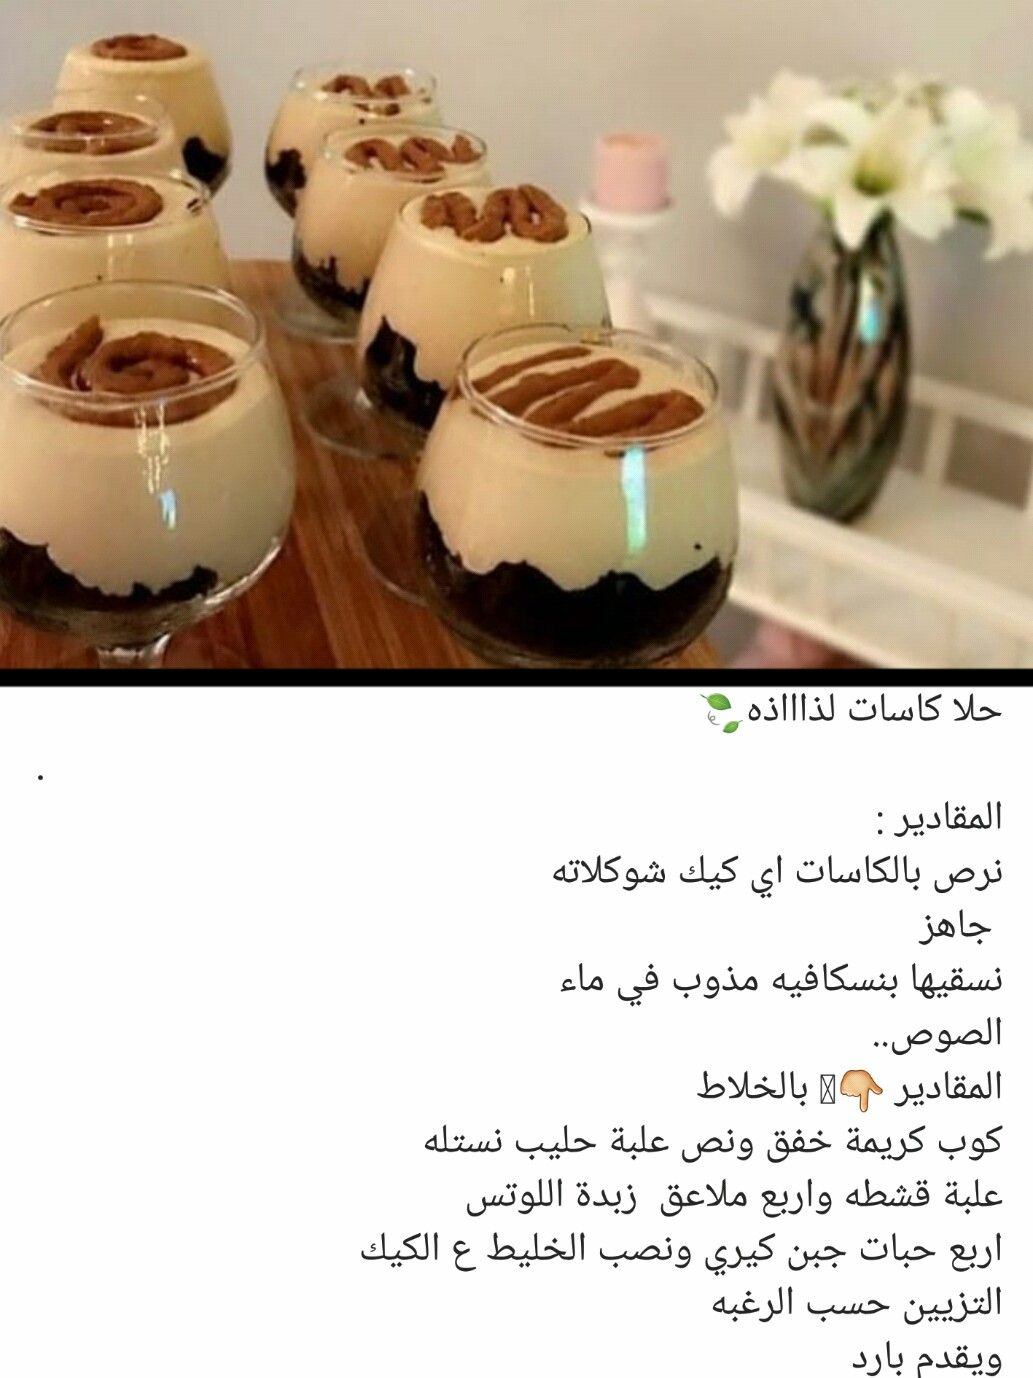 Pin By Asma Alotaibi On طبخ Food Desserts Recipes